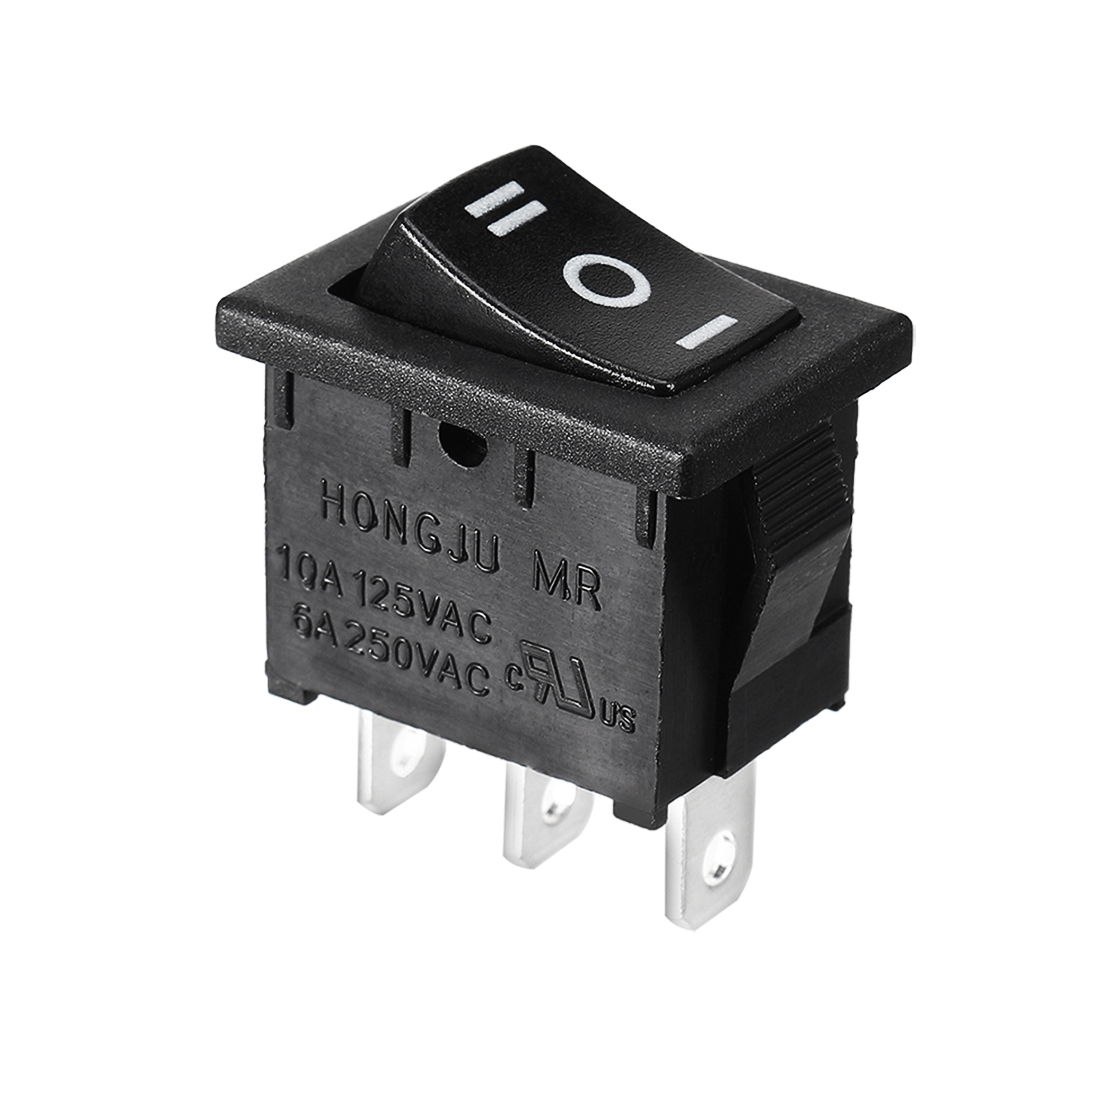 3-Pins 3 Position ON/OFF/ON SPDT Boat Rocker Switch 6A 250VAC 10A 125VAC